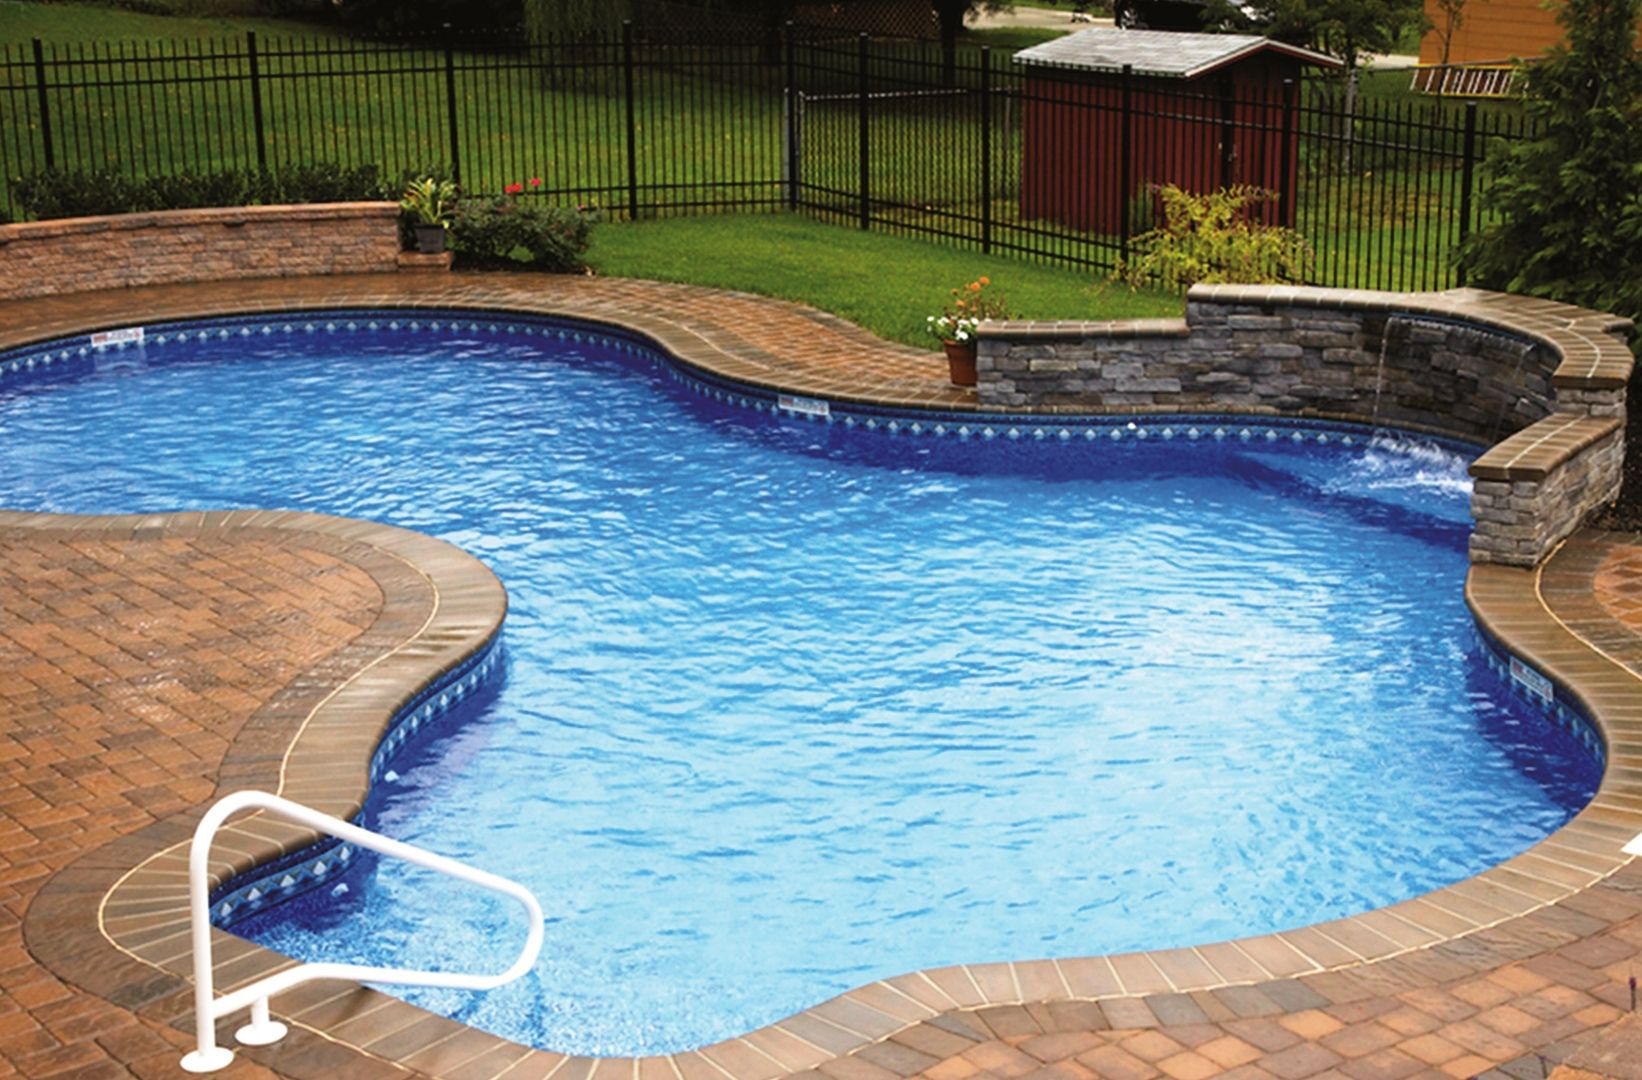 Back yard swimming pool ideas swimming pool design - Swimming pool designs galleries ...